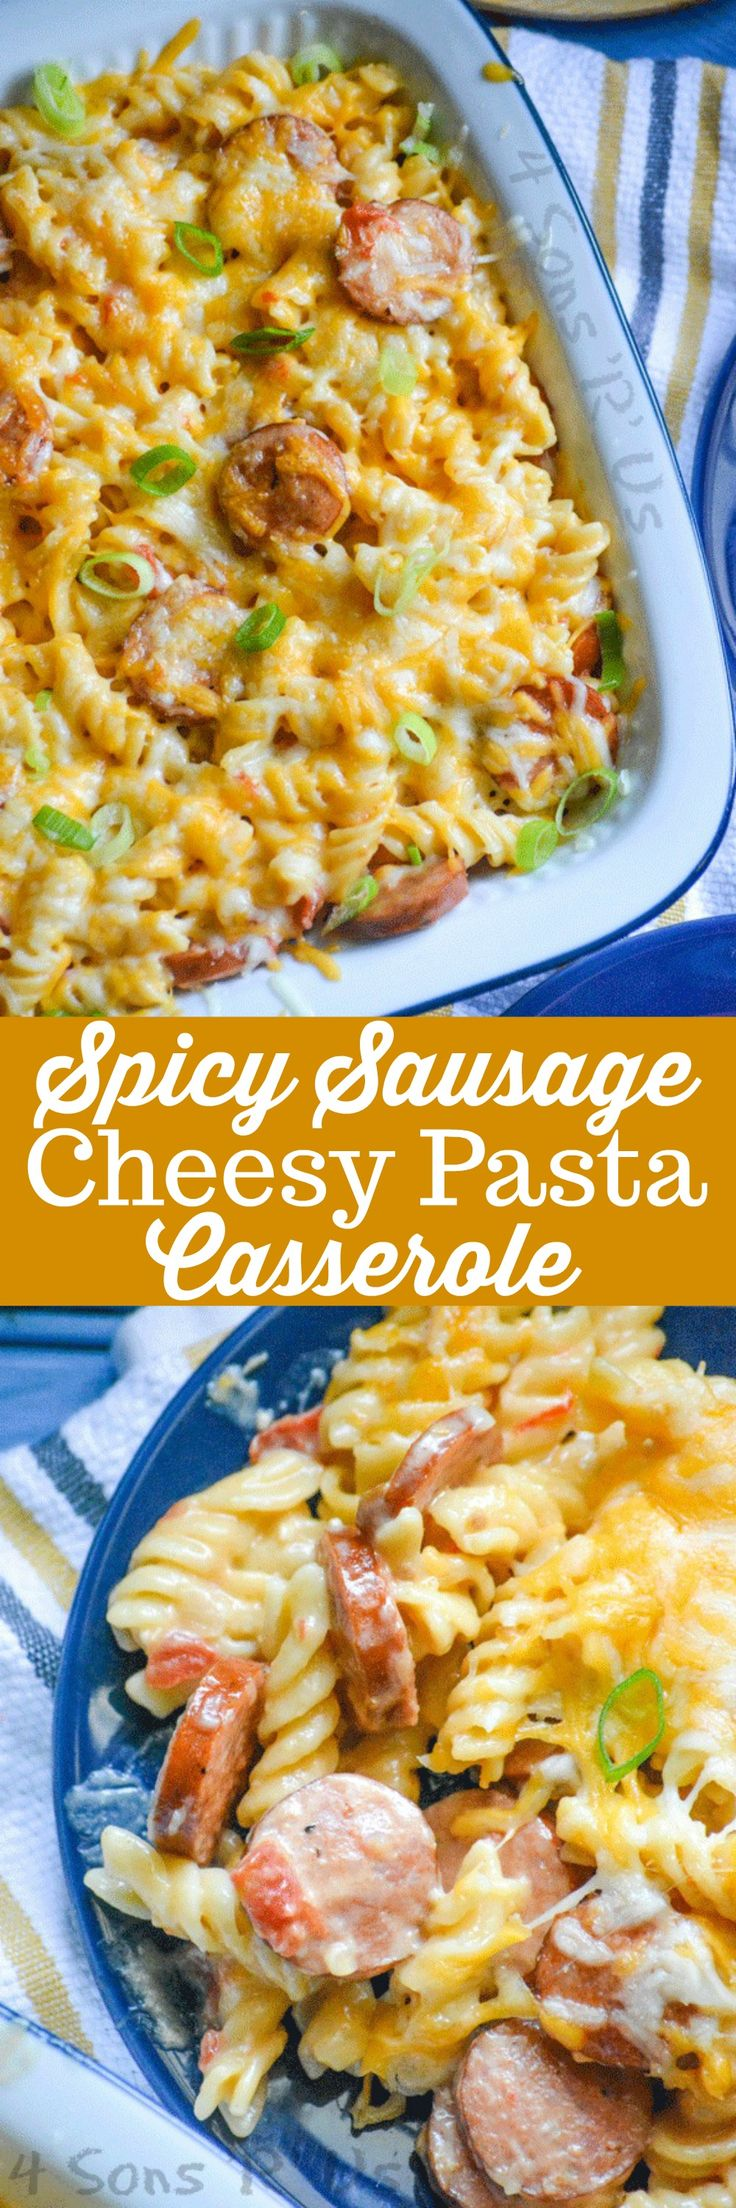 In less than 30 minutes you can have this Spicy Sausage and Pasta Casserole dinner whipped up. A little bit spicy, a little bit creamy, and a whole lot of cheesy-- this one dish casserole has it all.